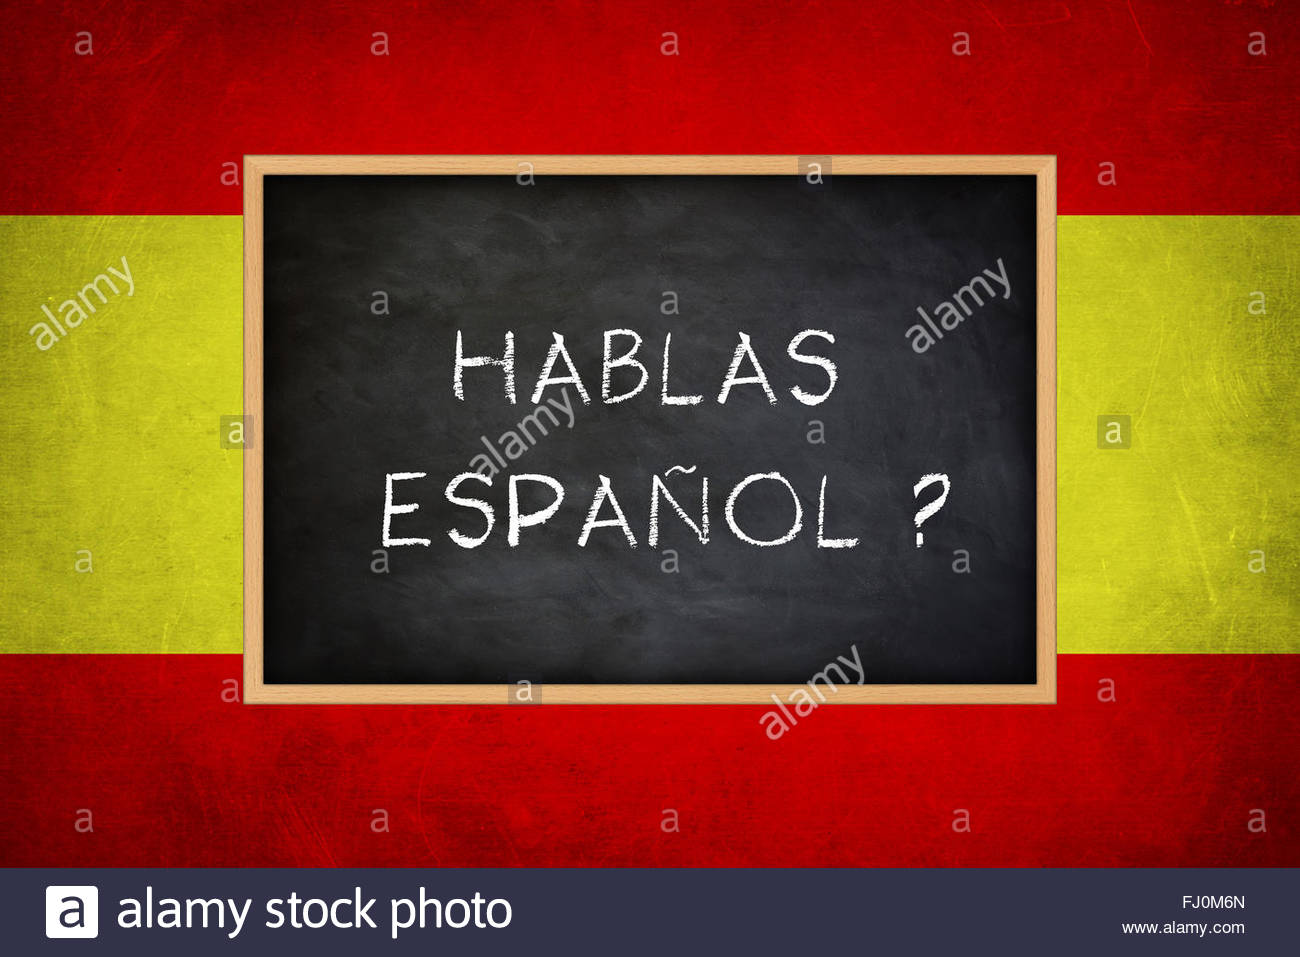 hablas espanol - Spanish language - Stock Image